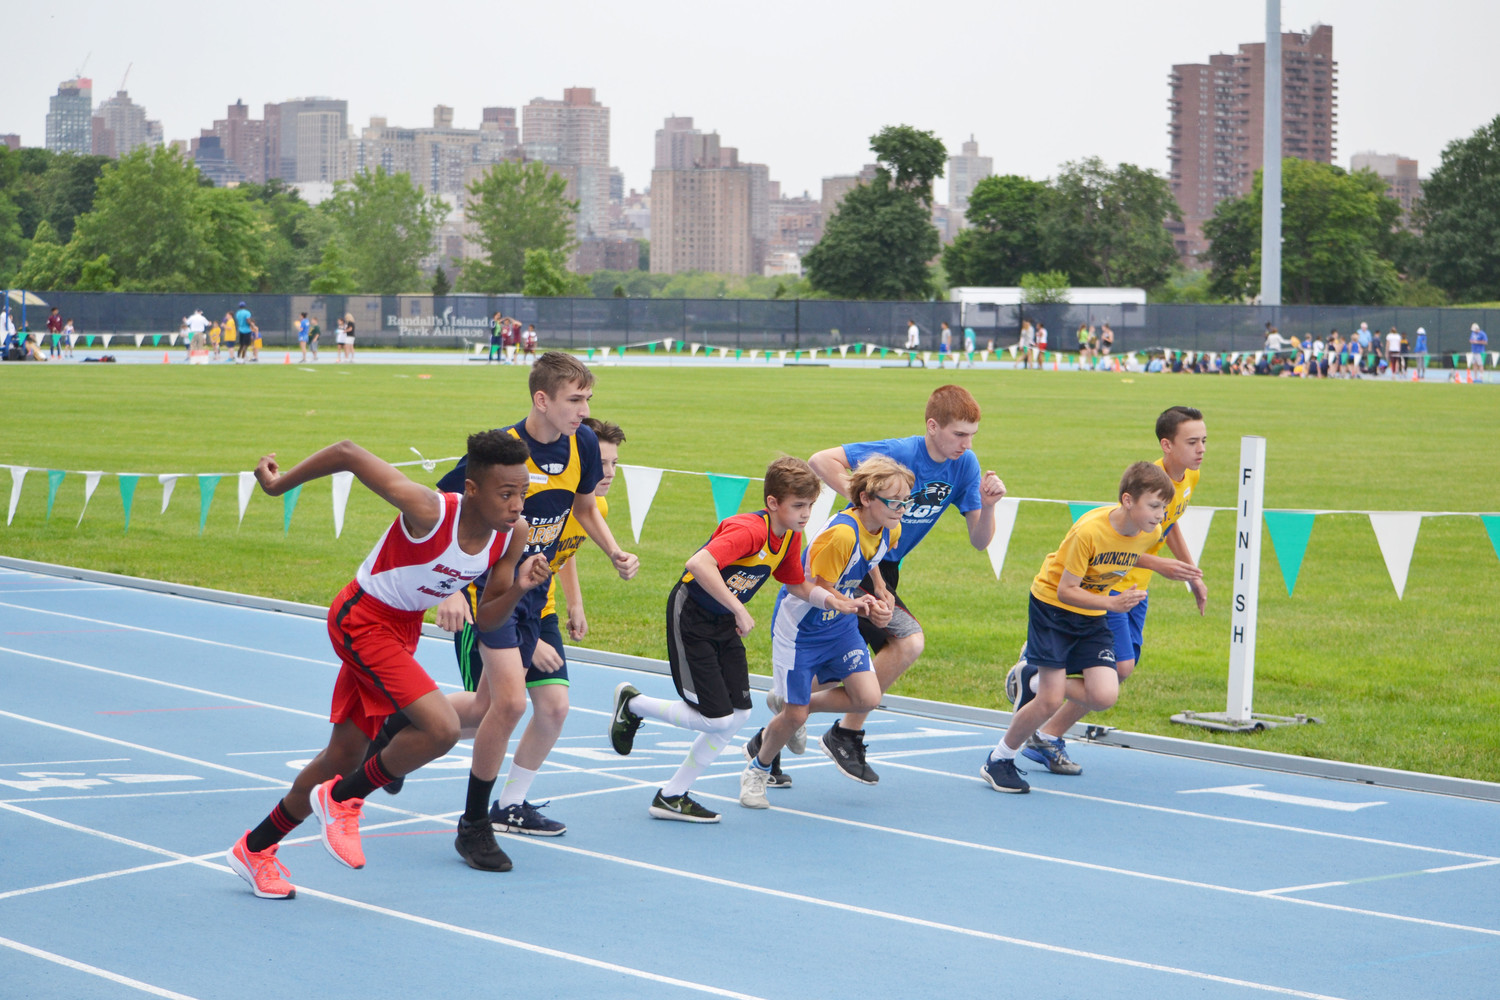 Runners take off from the starting line in an eighth-grade race at the Archdiocesan CYO Track and Field Championships at Icahn Stadium on Randalls Island in Manhattan June 10. St. Charles of Staten Island won the boys and girls team championships.